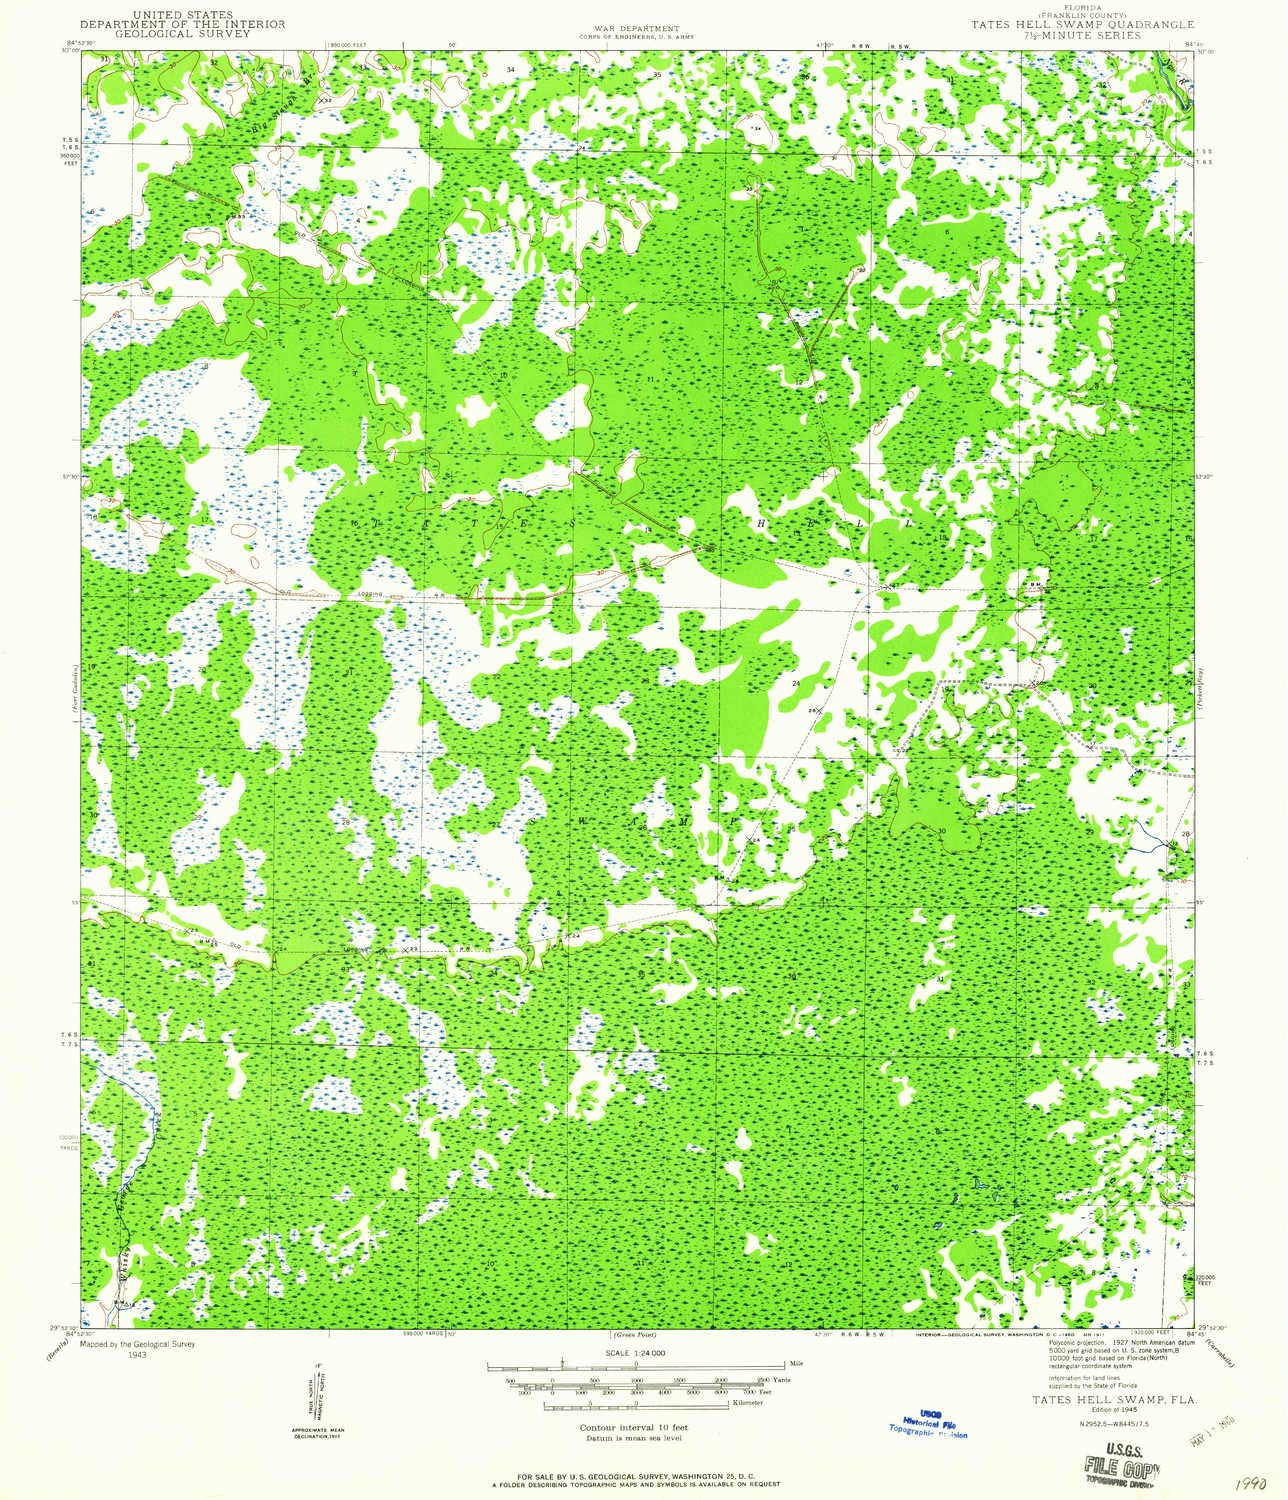 Images Of A Swamp On Topographic Map on topographic map gulf of mexico, topographic map art, topographic map stream, topographic map alluvial fan, topographic map valley, topographic map river, topographic map drainage divide, topographic map ocean, topographic map bay, topographic map island, topographic map ridge, topographic map weathering, topographic map hill,